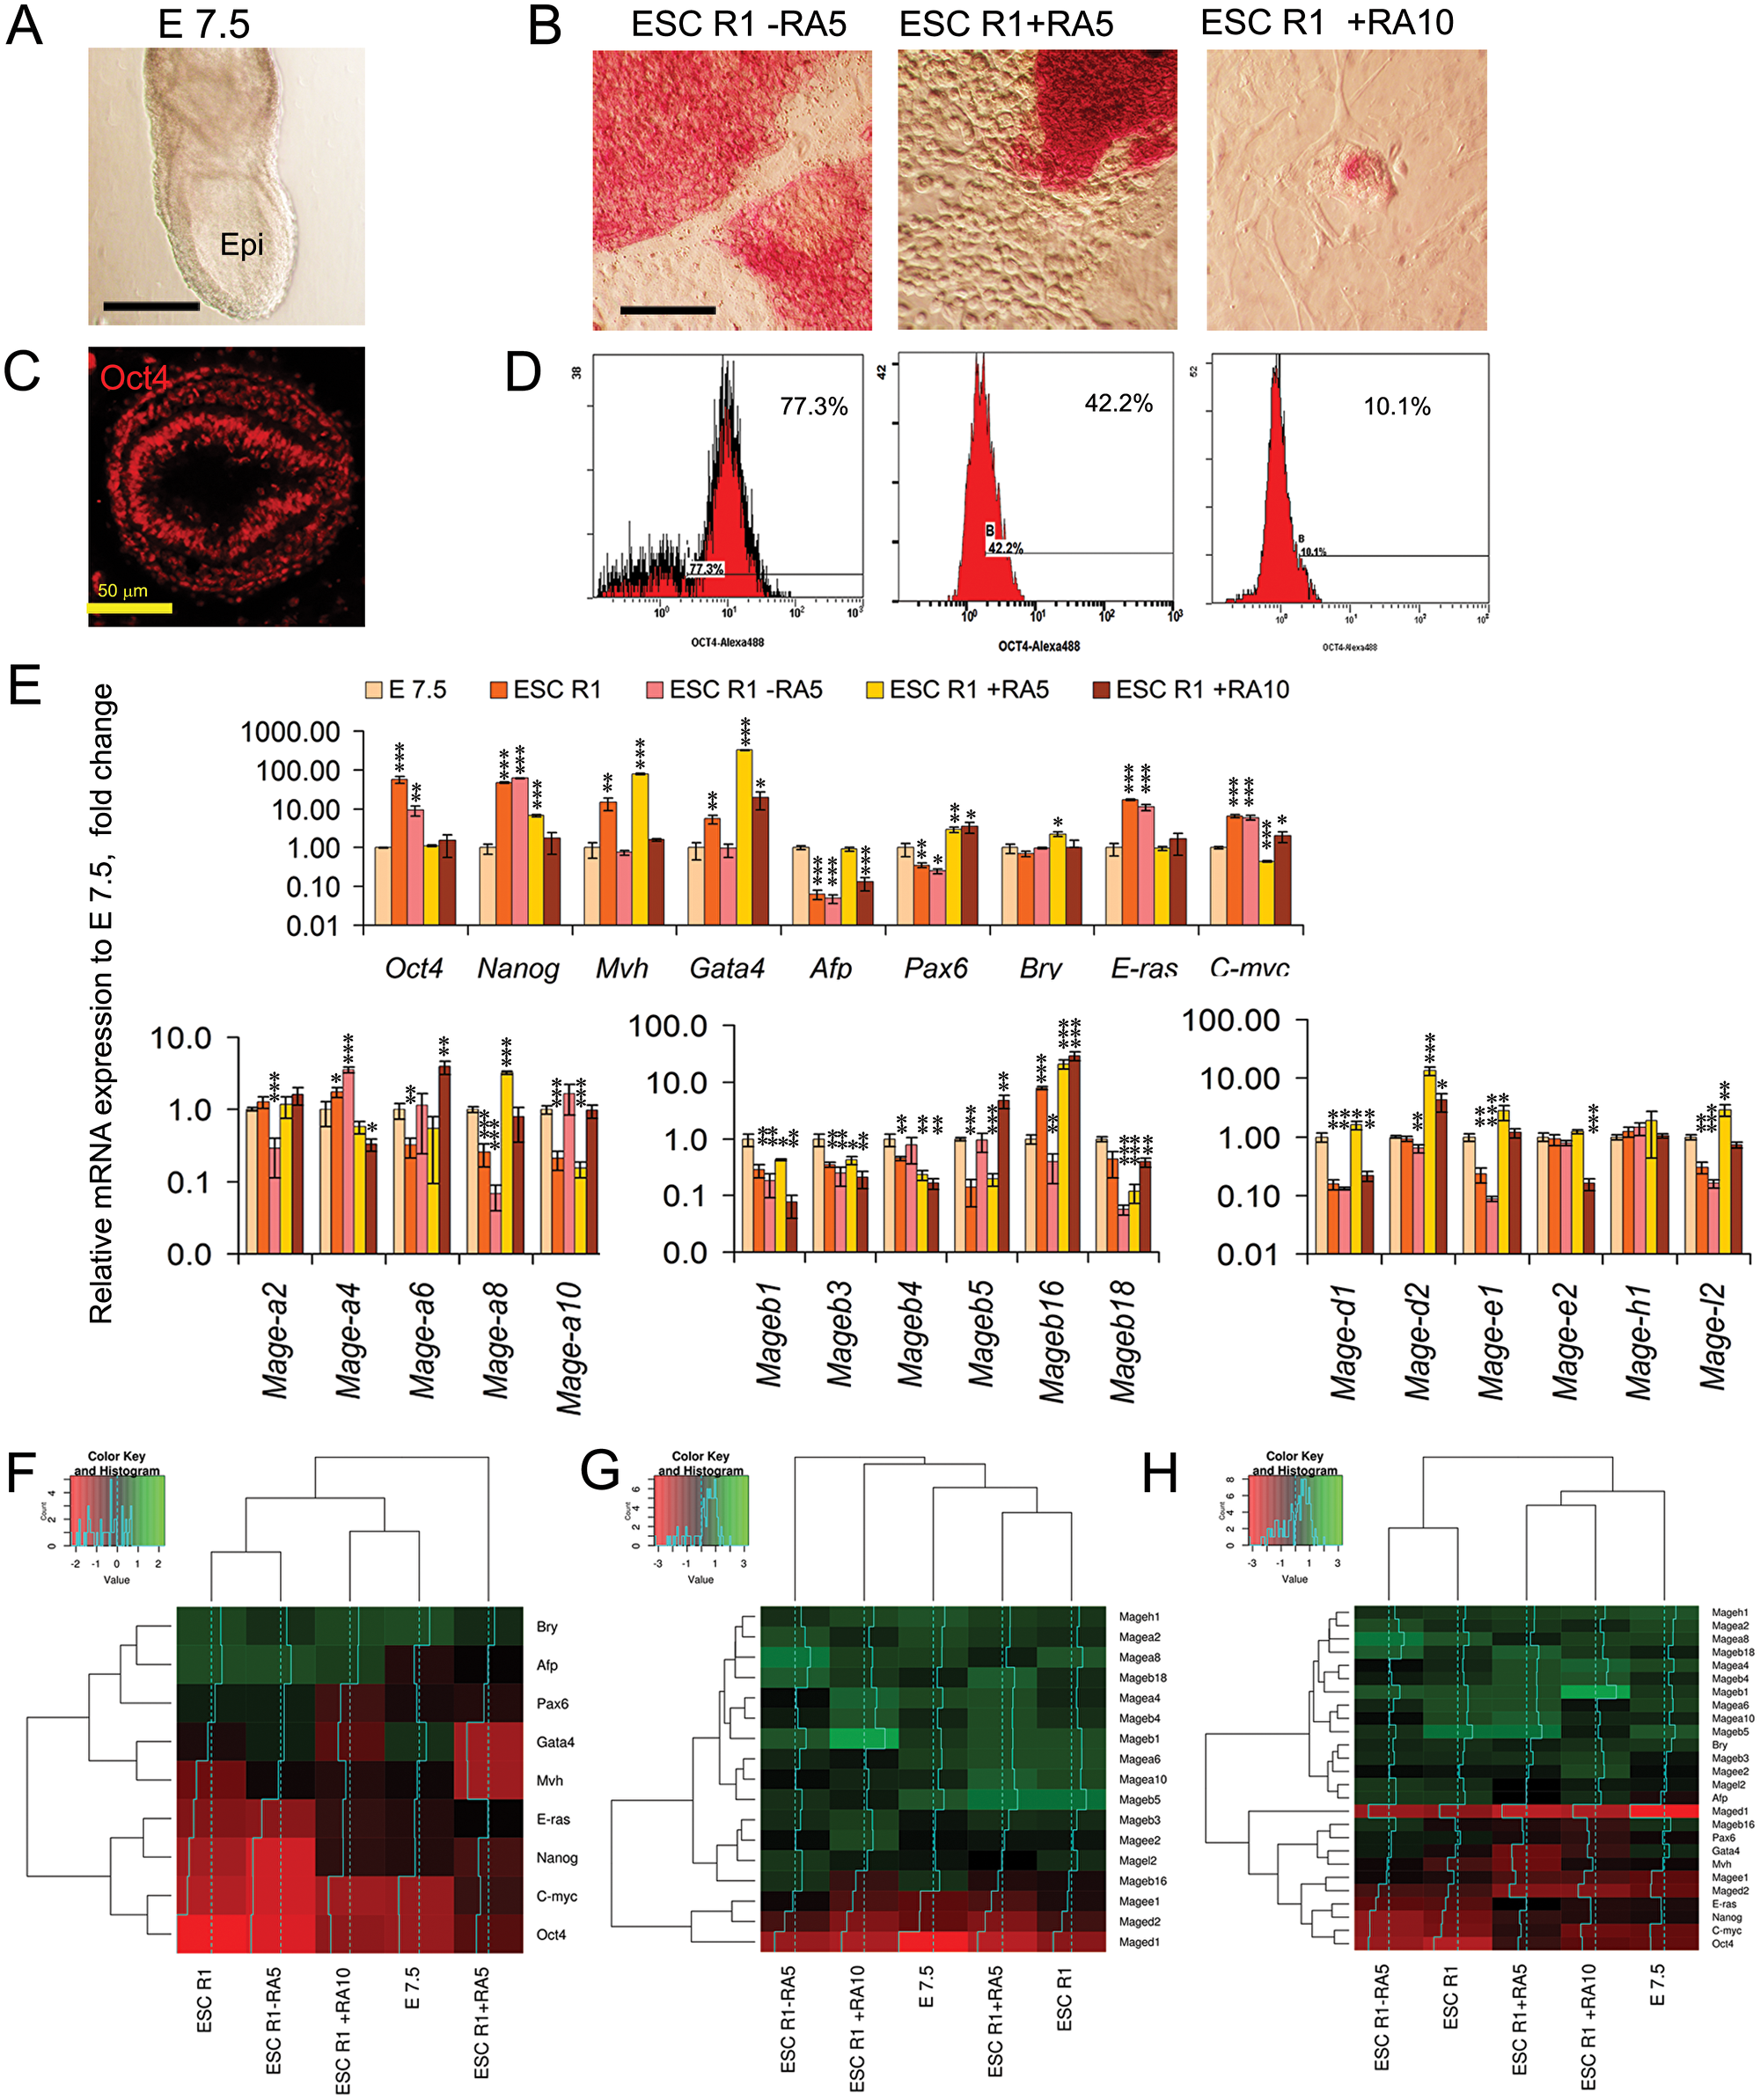 Comparative analysis of Mage family expression patterns in E7.5 mouse embryos and differentiating ESCs.